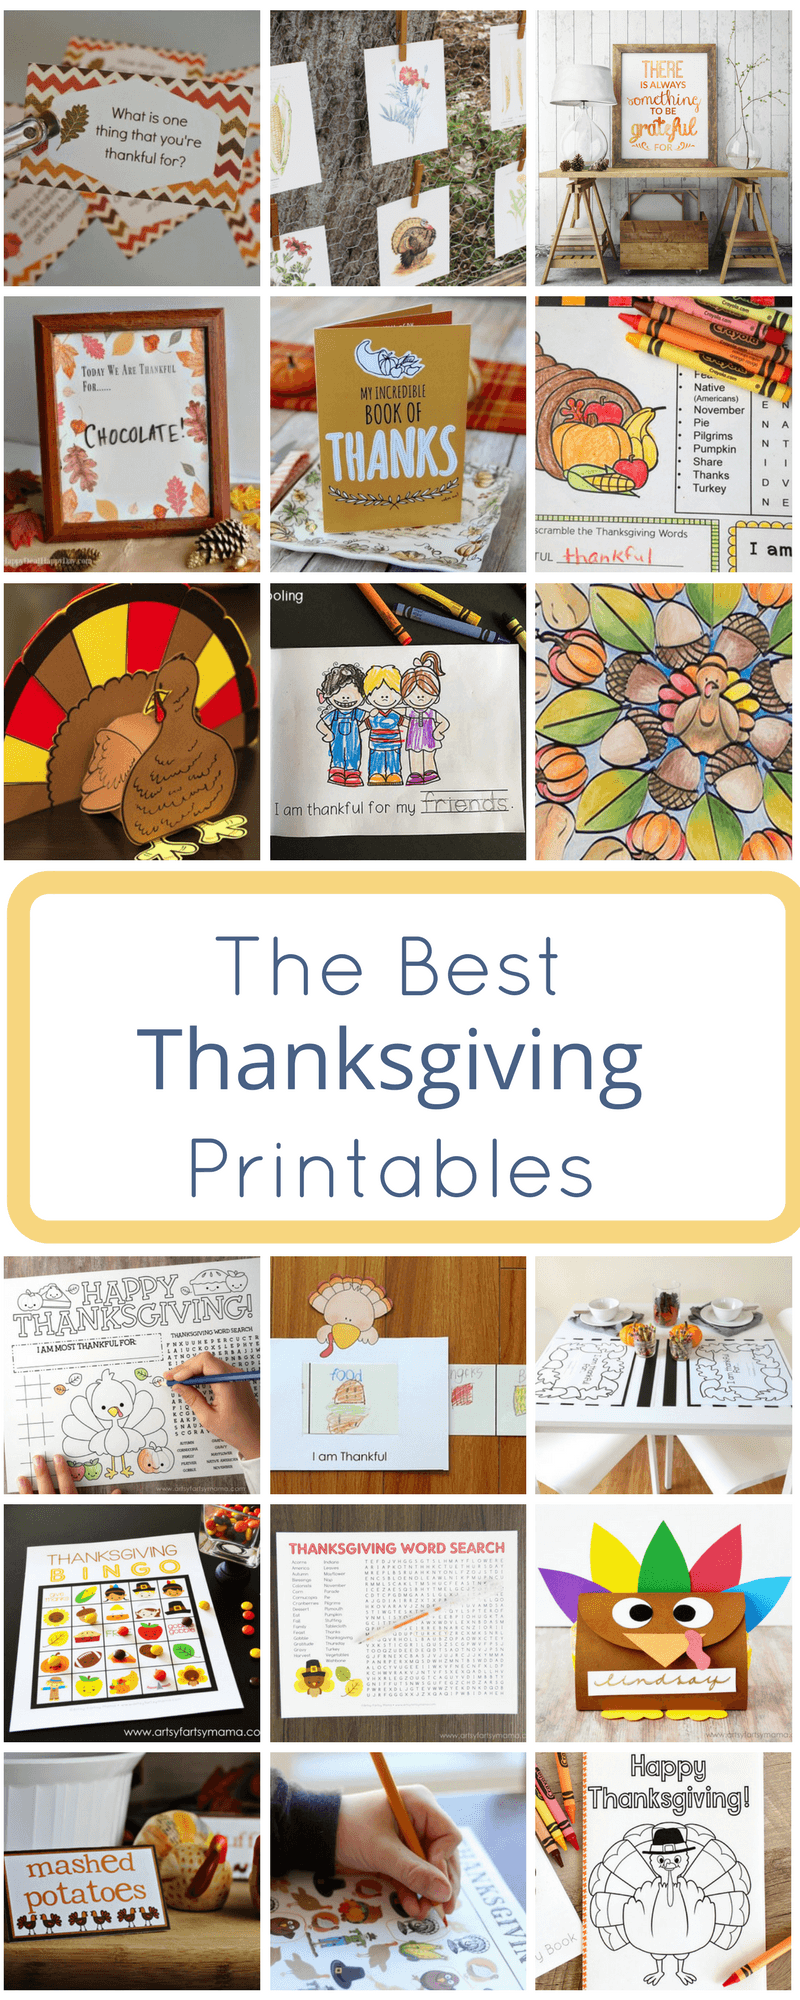 Thanksgiving Printables are a perfect way to add seasonal decor to your home, personalize your holiday table or just find fun holiday activities for the kids.